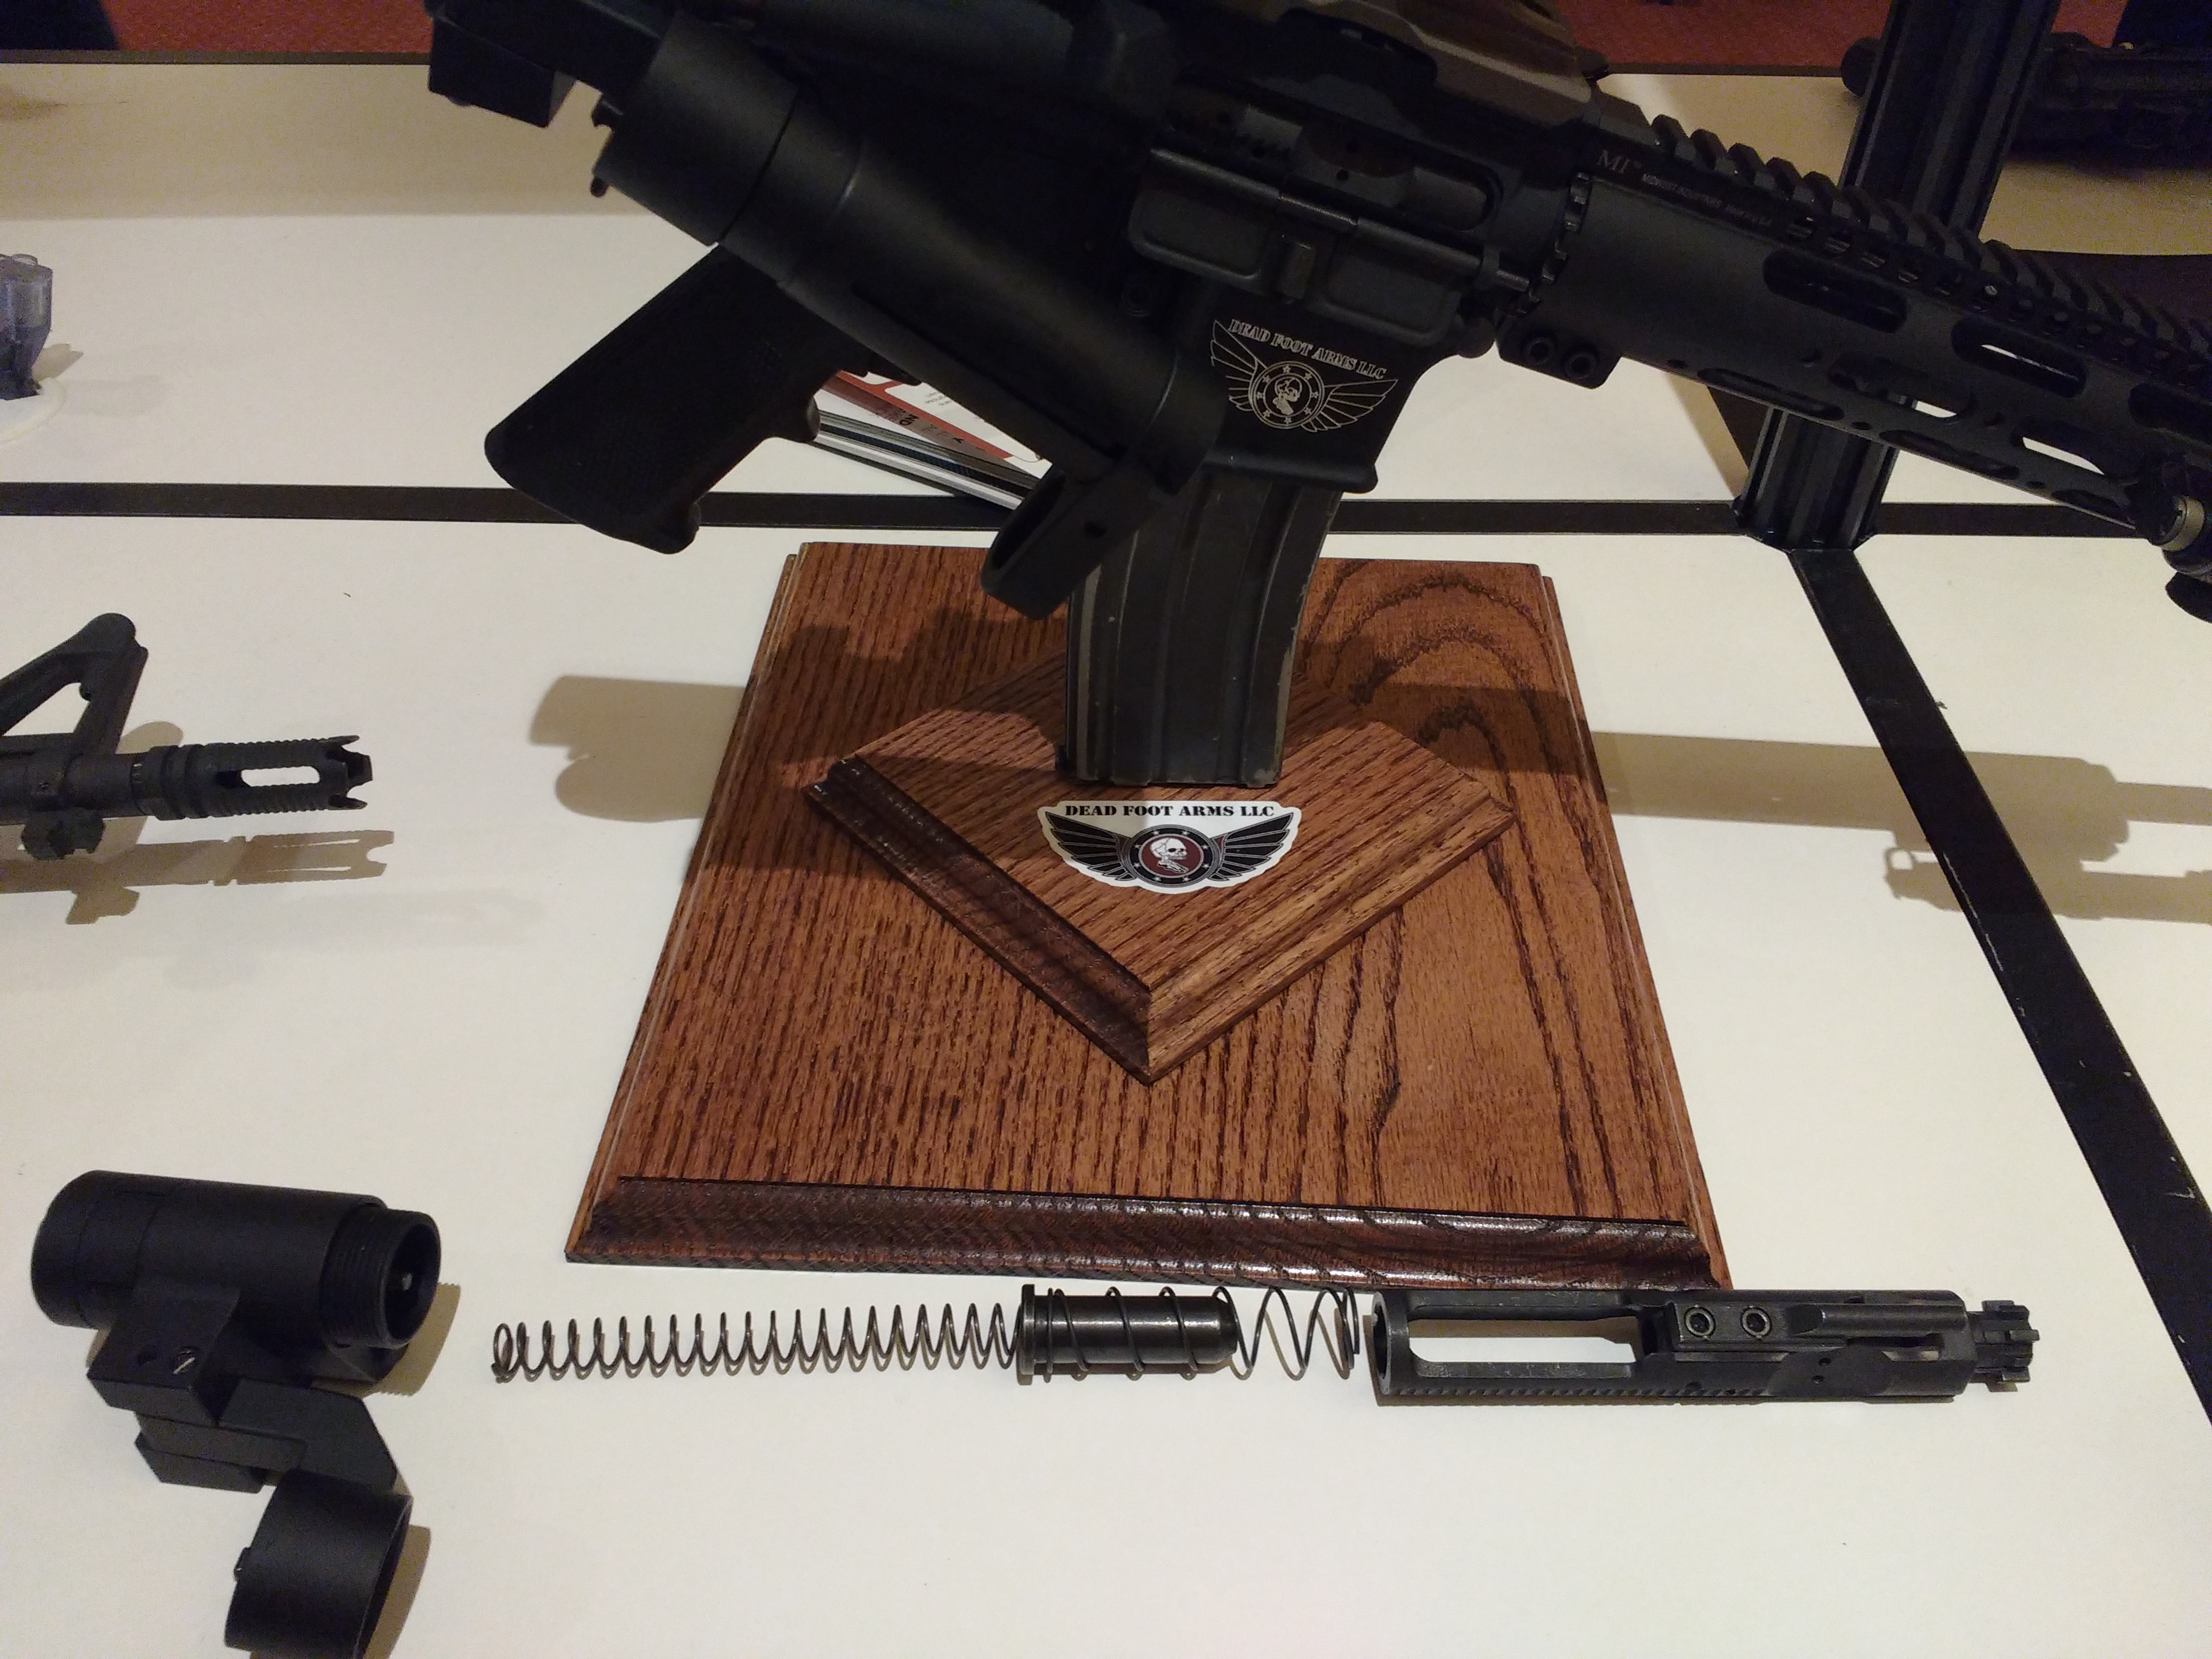 Dead Foot Arms MODIFIED CYCLE SYSTEM (MCS) Folding AR Stock - SHOT